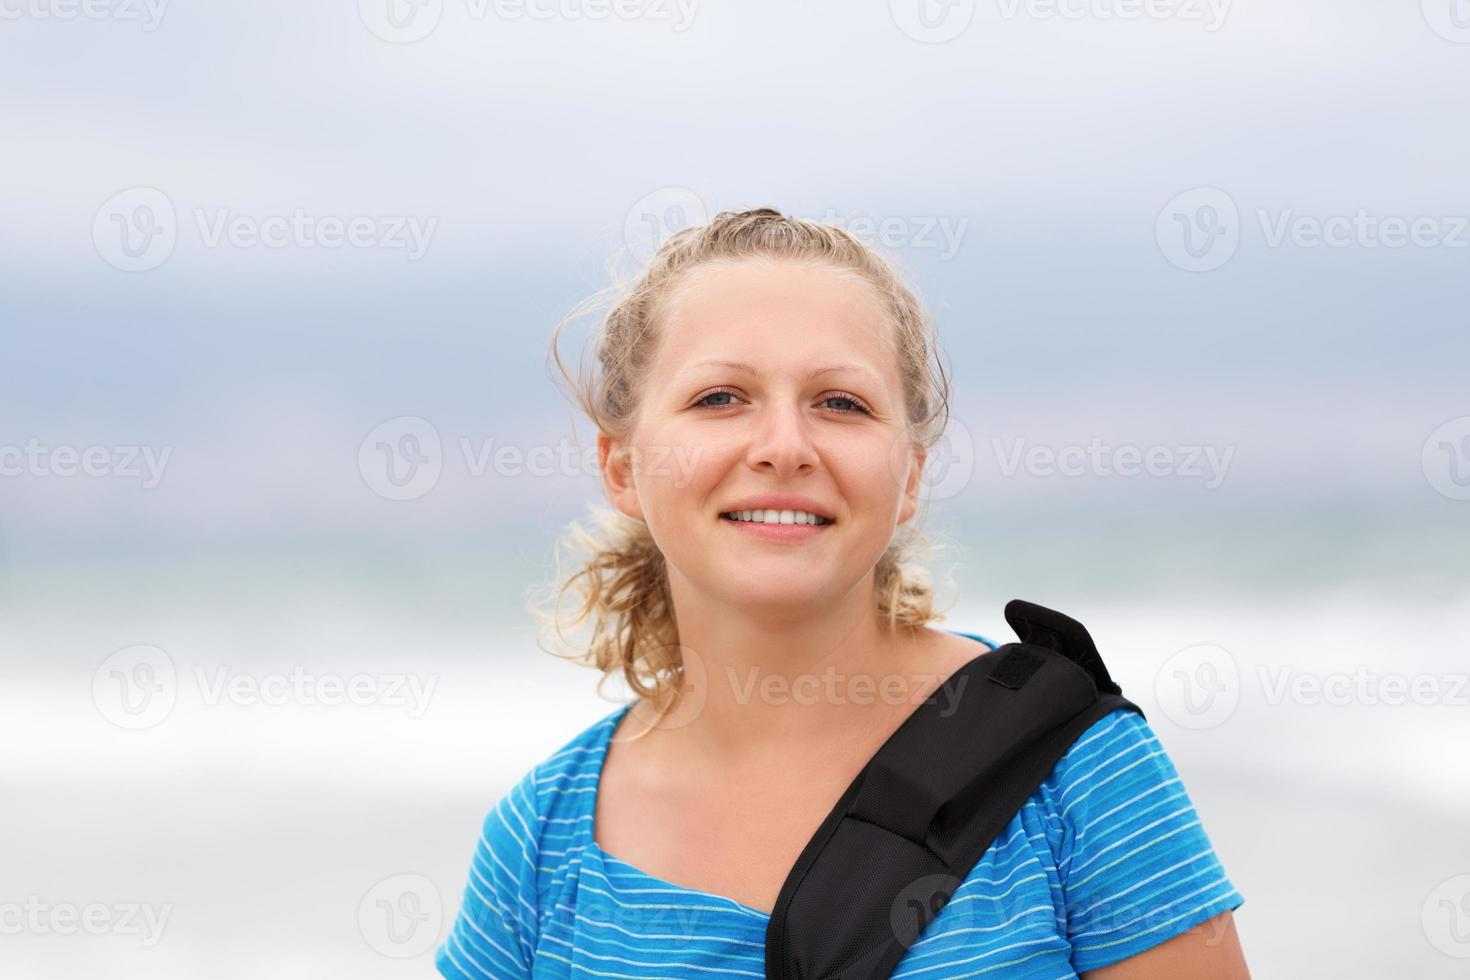 Smiling young woman photo